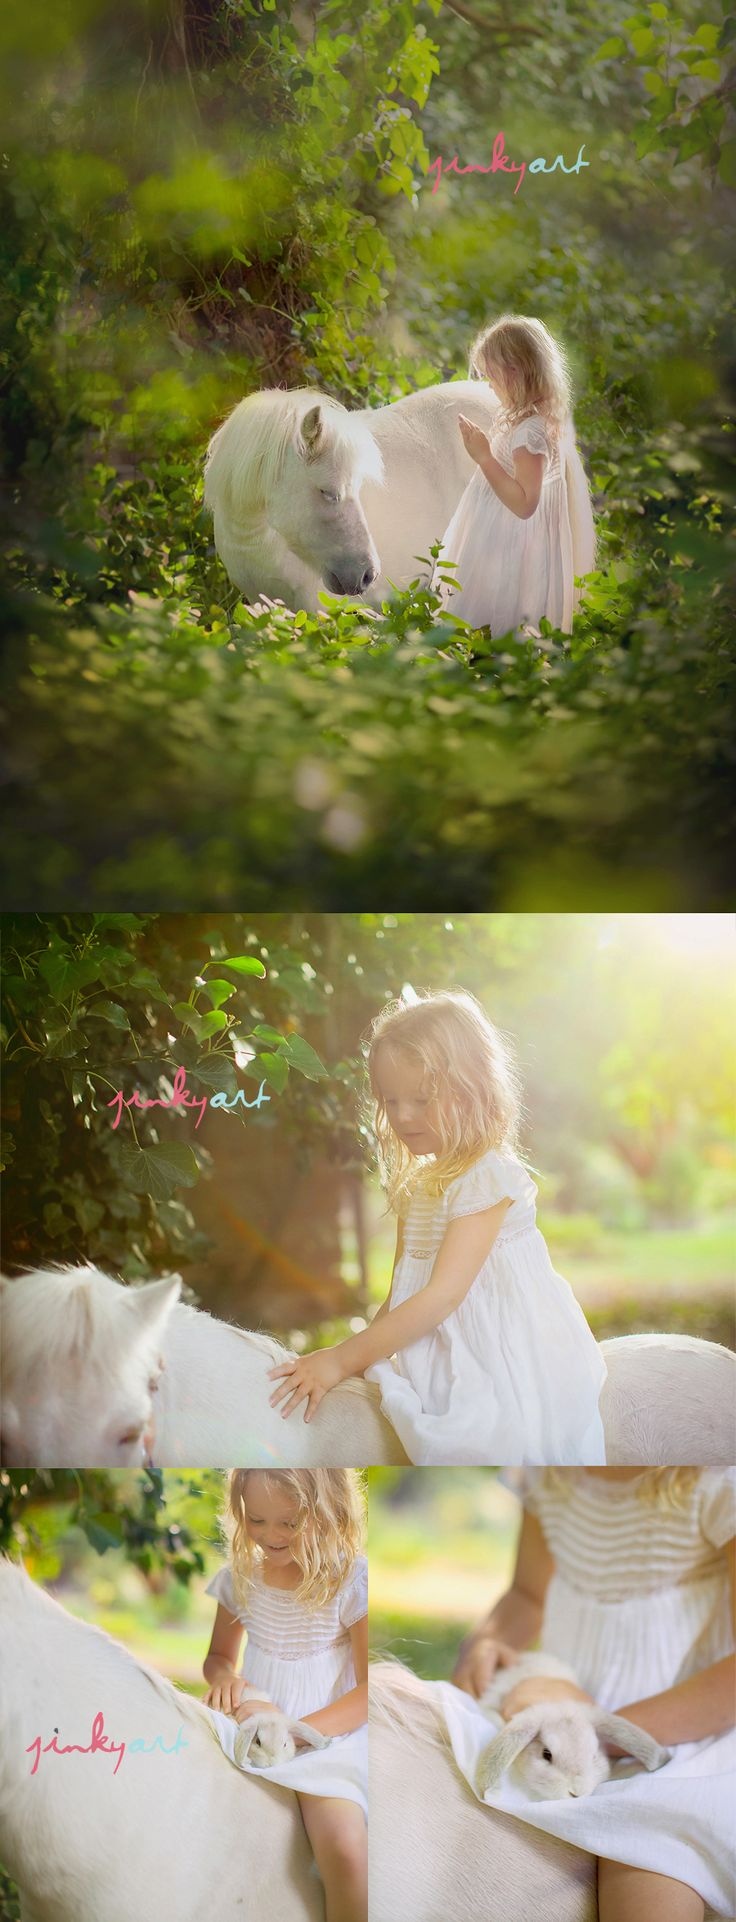 A girl and her pony.Little Girls, Photos Ideas, Jinky Art, Art Photography, Photos Shoots, White Horses, White Dresses, Photo Shoots, Jinkyart